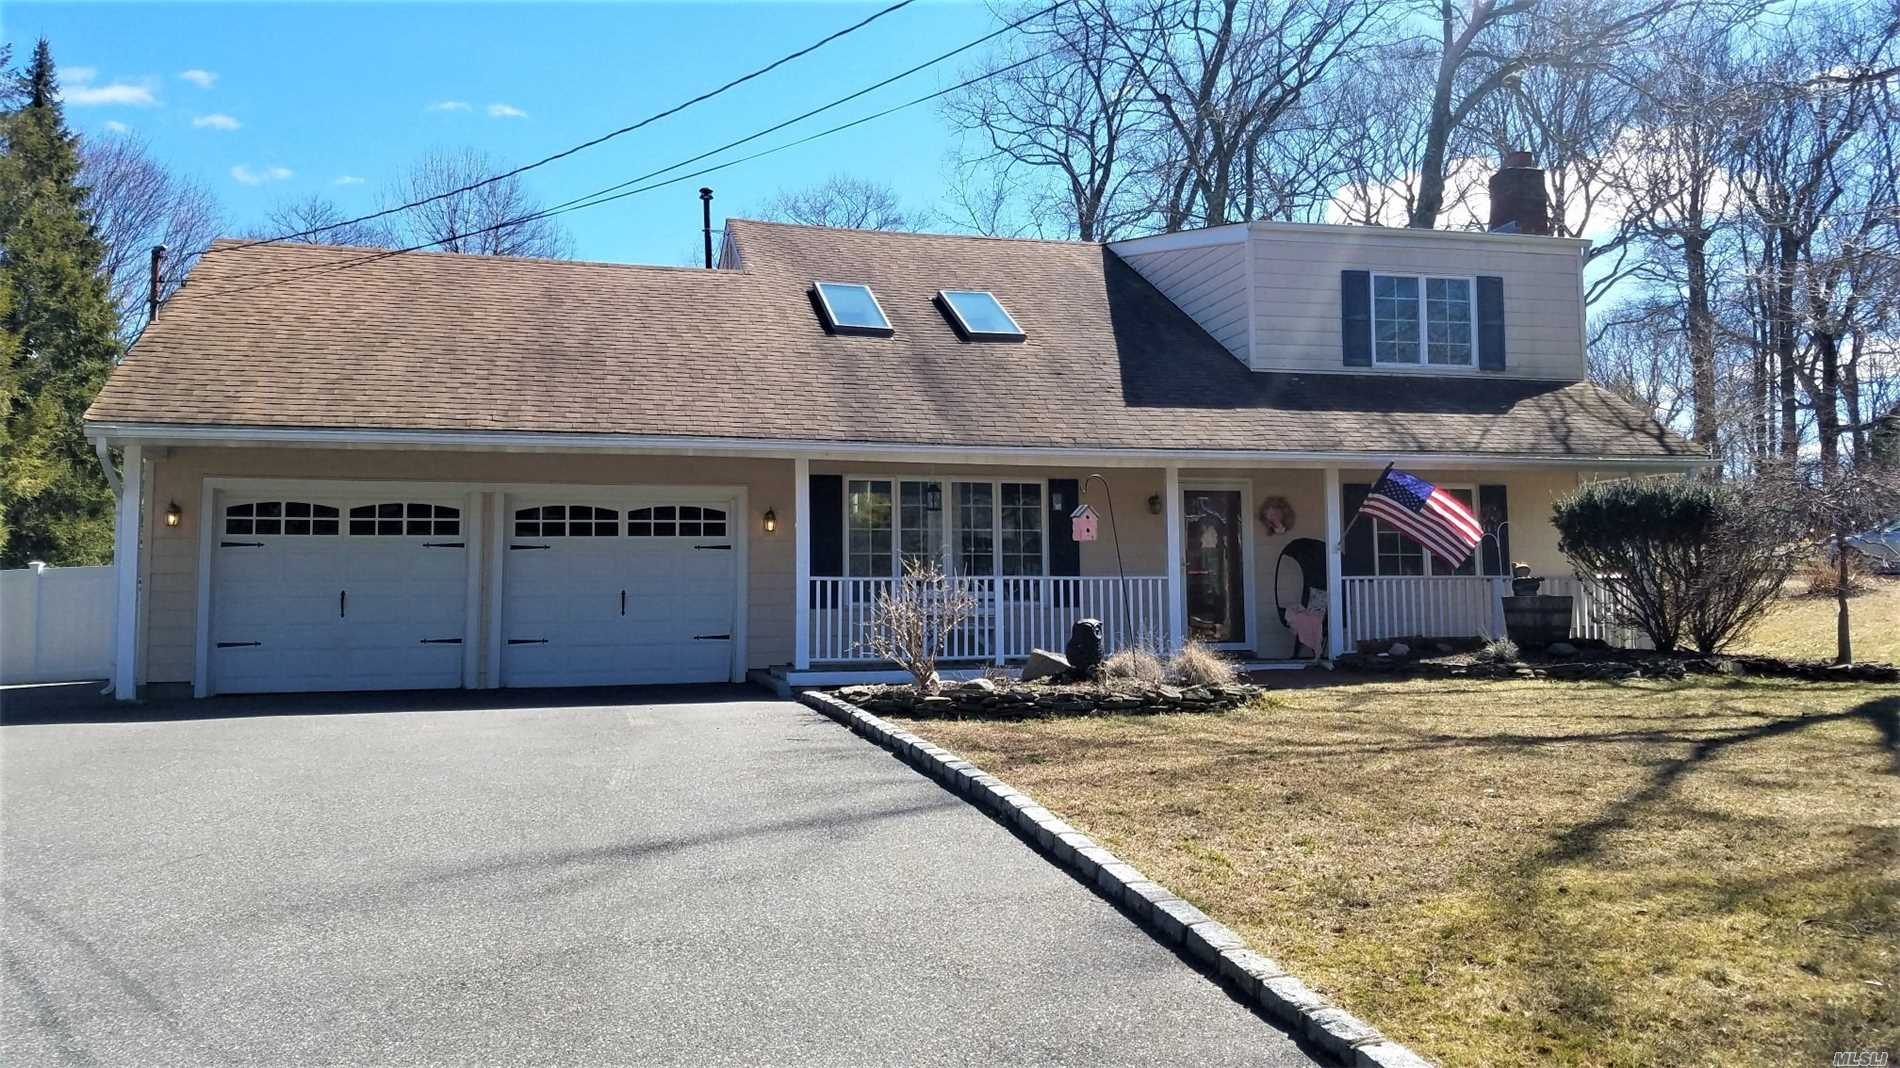 Welcome Home! Charming Farm Ranch Boasts 4 Brs, Flr, Fdr W/Fpl, Lg. Eik, Fam Rm W/Pellet Stove, 2.5 Bths, Newer Wood Floors, S/S Appliances, Paint, Bathrooms, Spacious Enclosed 3 Season's Room With Trex Decking, Manicured Property, 2 Car Garage, Extended Driveway, Beach Rights.